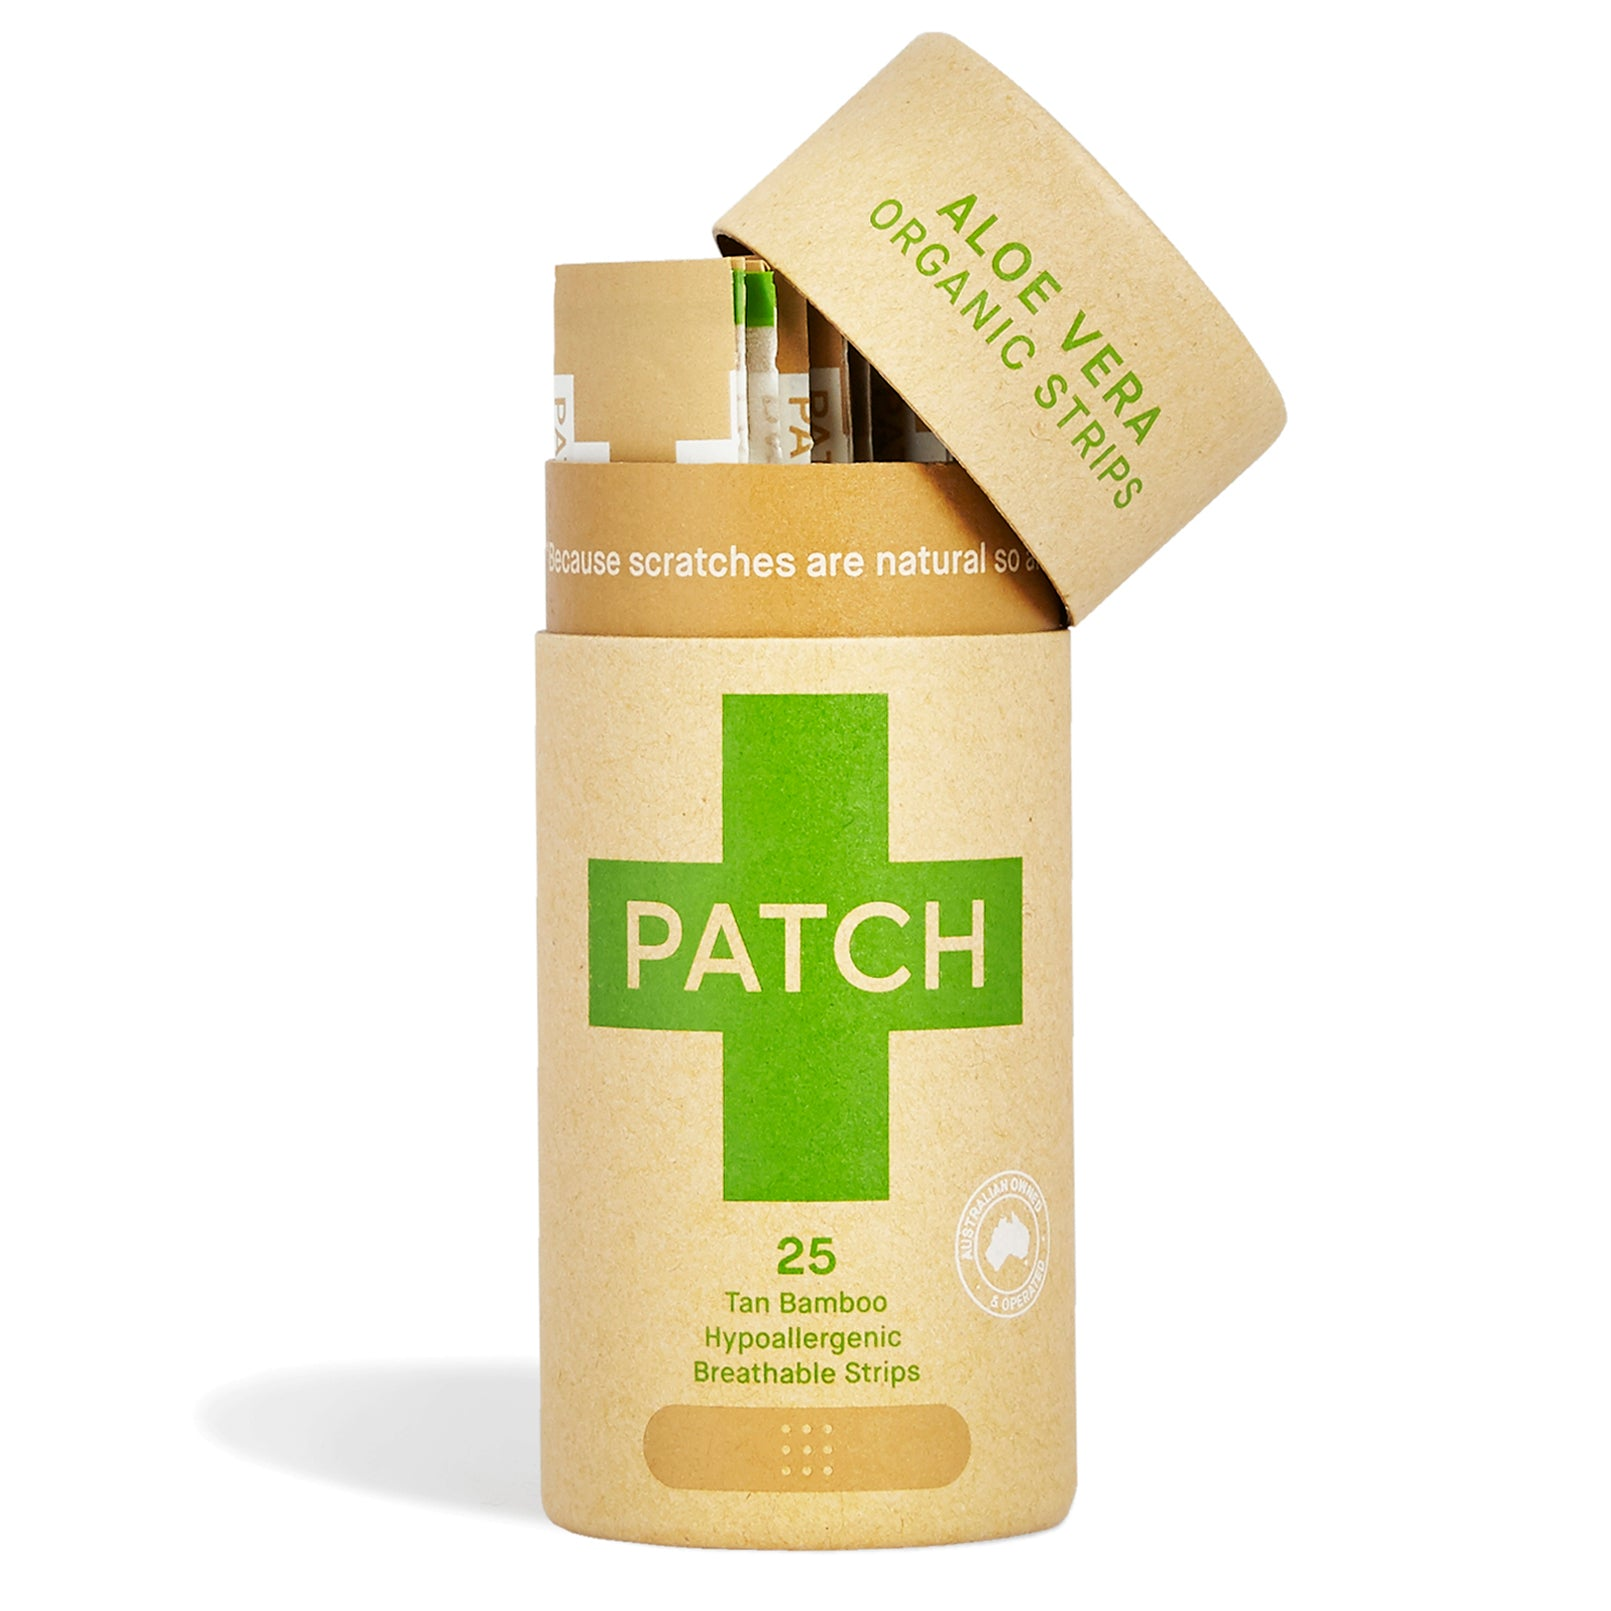 PATCH Eco-Friendly Organic Bamboo Bandage Strips | Natural Wound Care | Bamboo pleisters | Recyclebare pleisters | Natuurlijke wondverzorging | PATCH natuurlijke, bamboe pleisters, Aloe Vera Bamboe pleisters, PATCH Aloe Vera Adhesive Bandates.